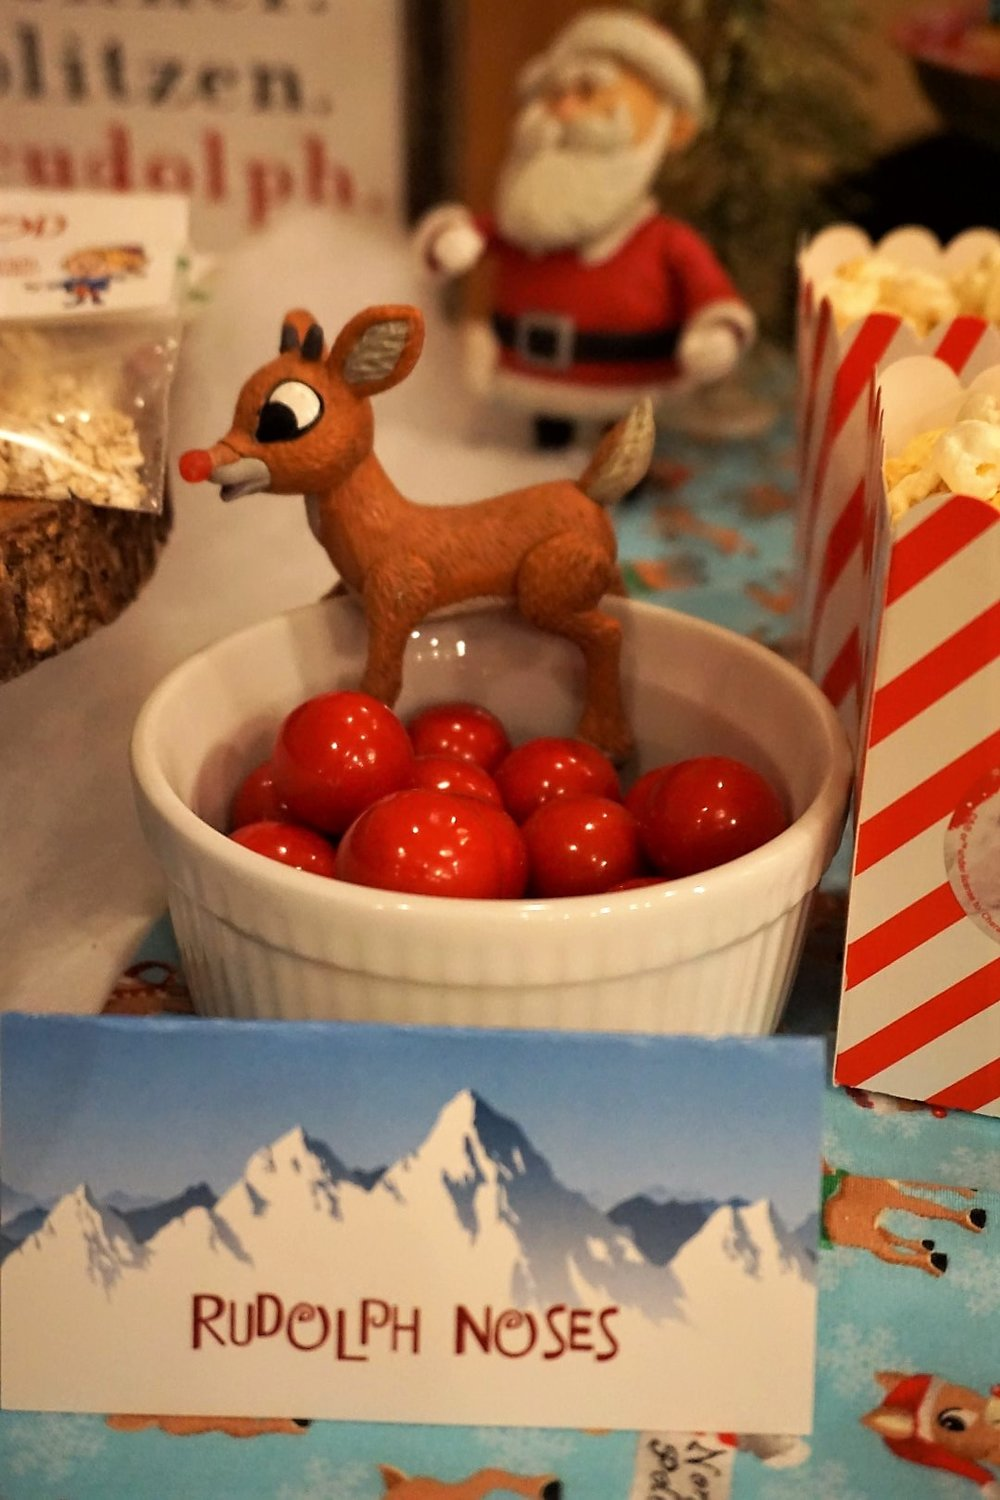 Rudolph figure and candy gumballs make a perfect themed treat.